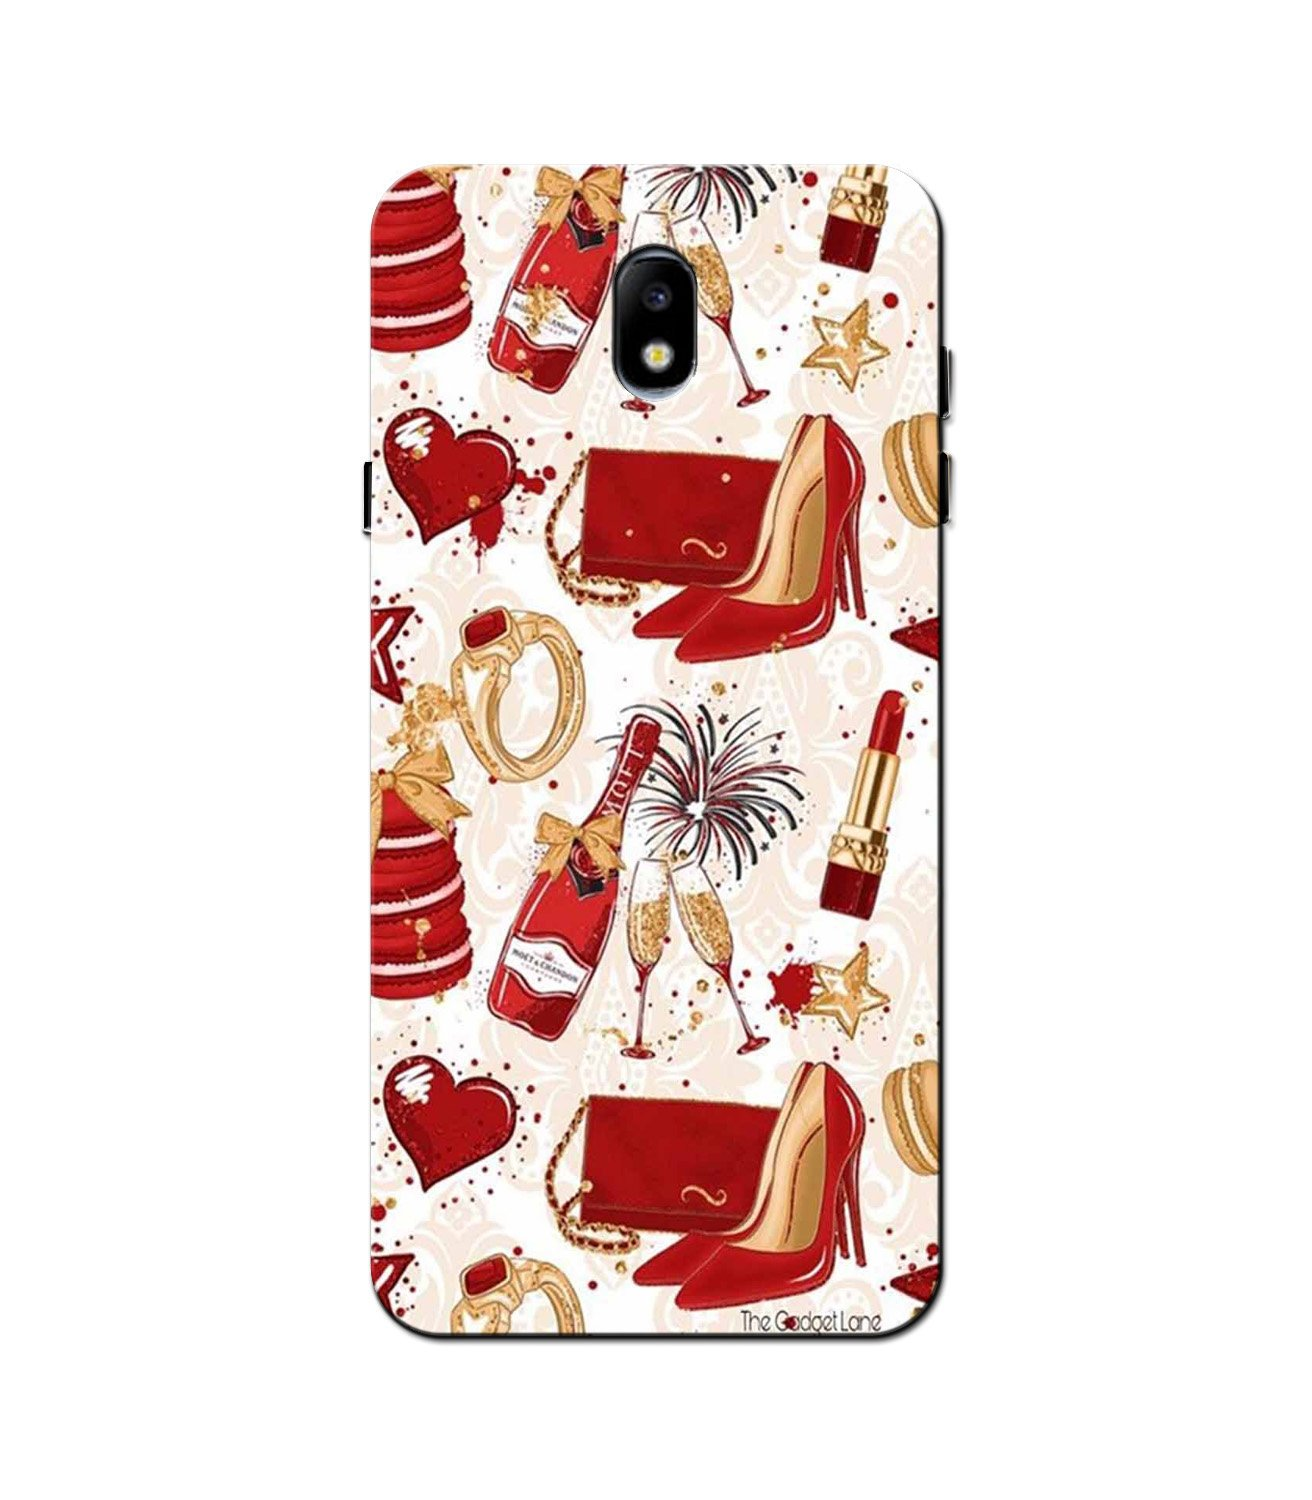 Girlish Mobile Back Case for Galaxy J5 Pro  (Design - 312)